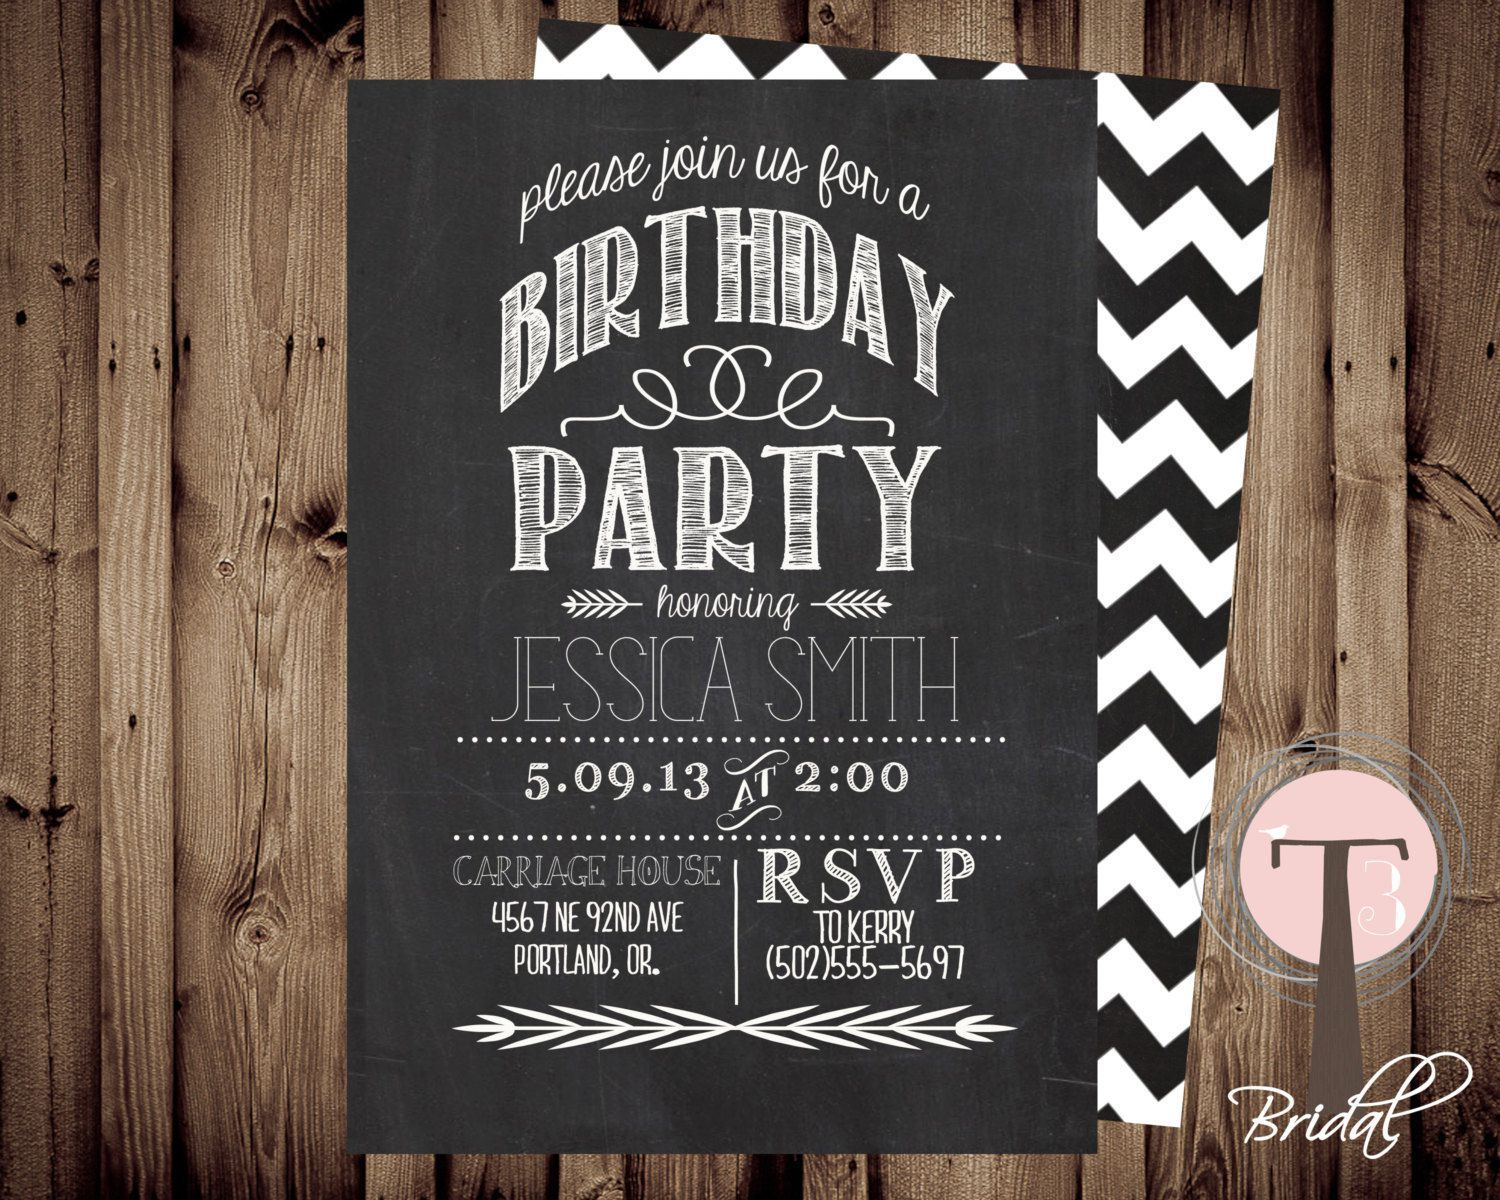 Funny birthday invites for adults : funny birthday party invitation ...